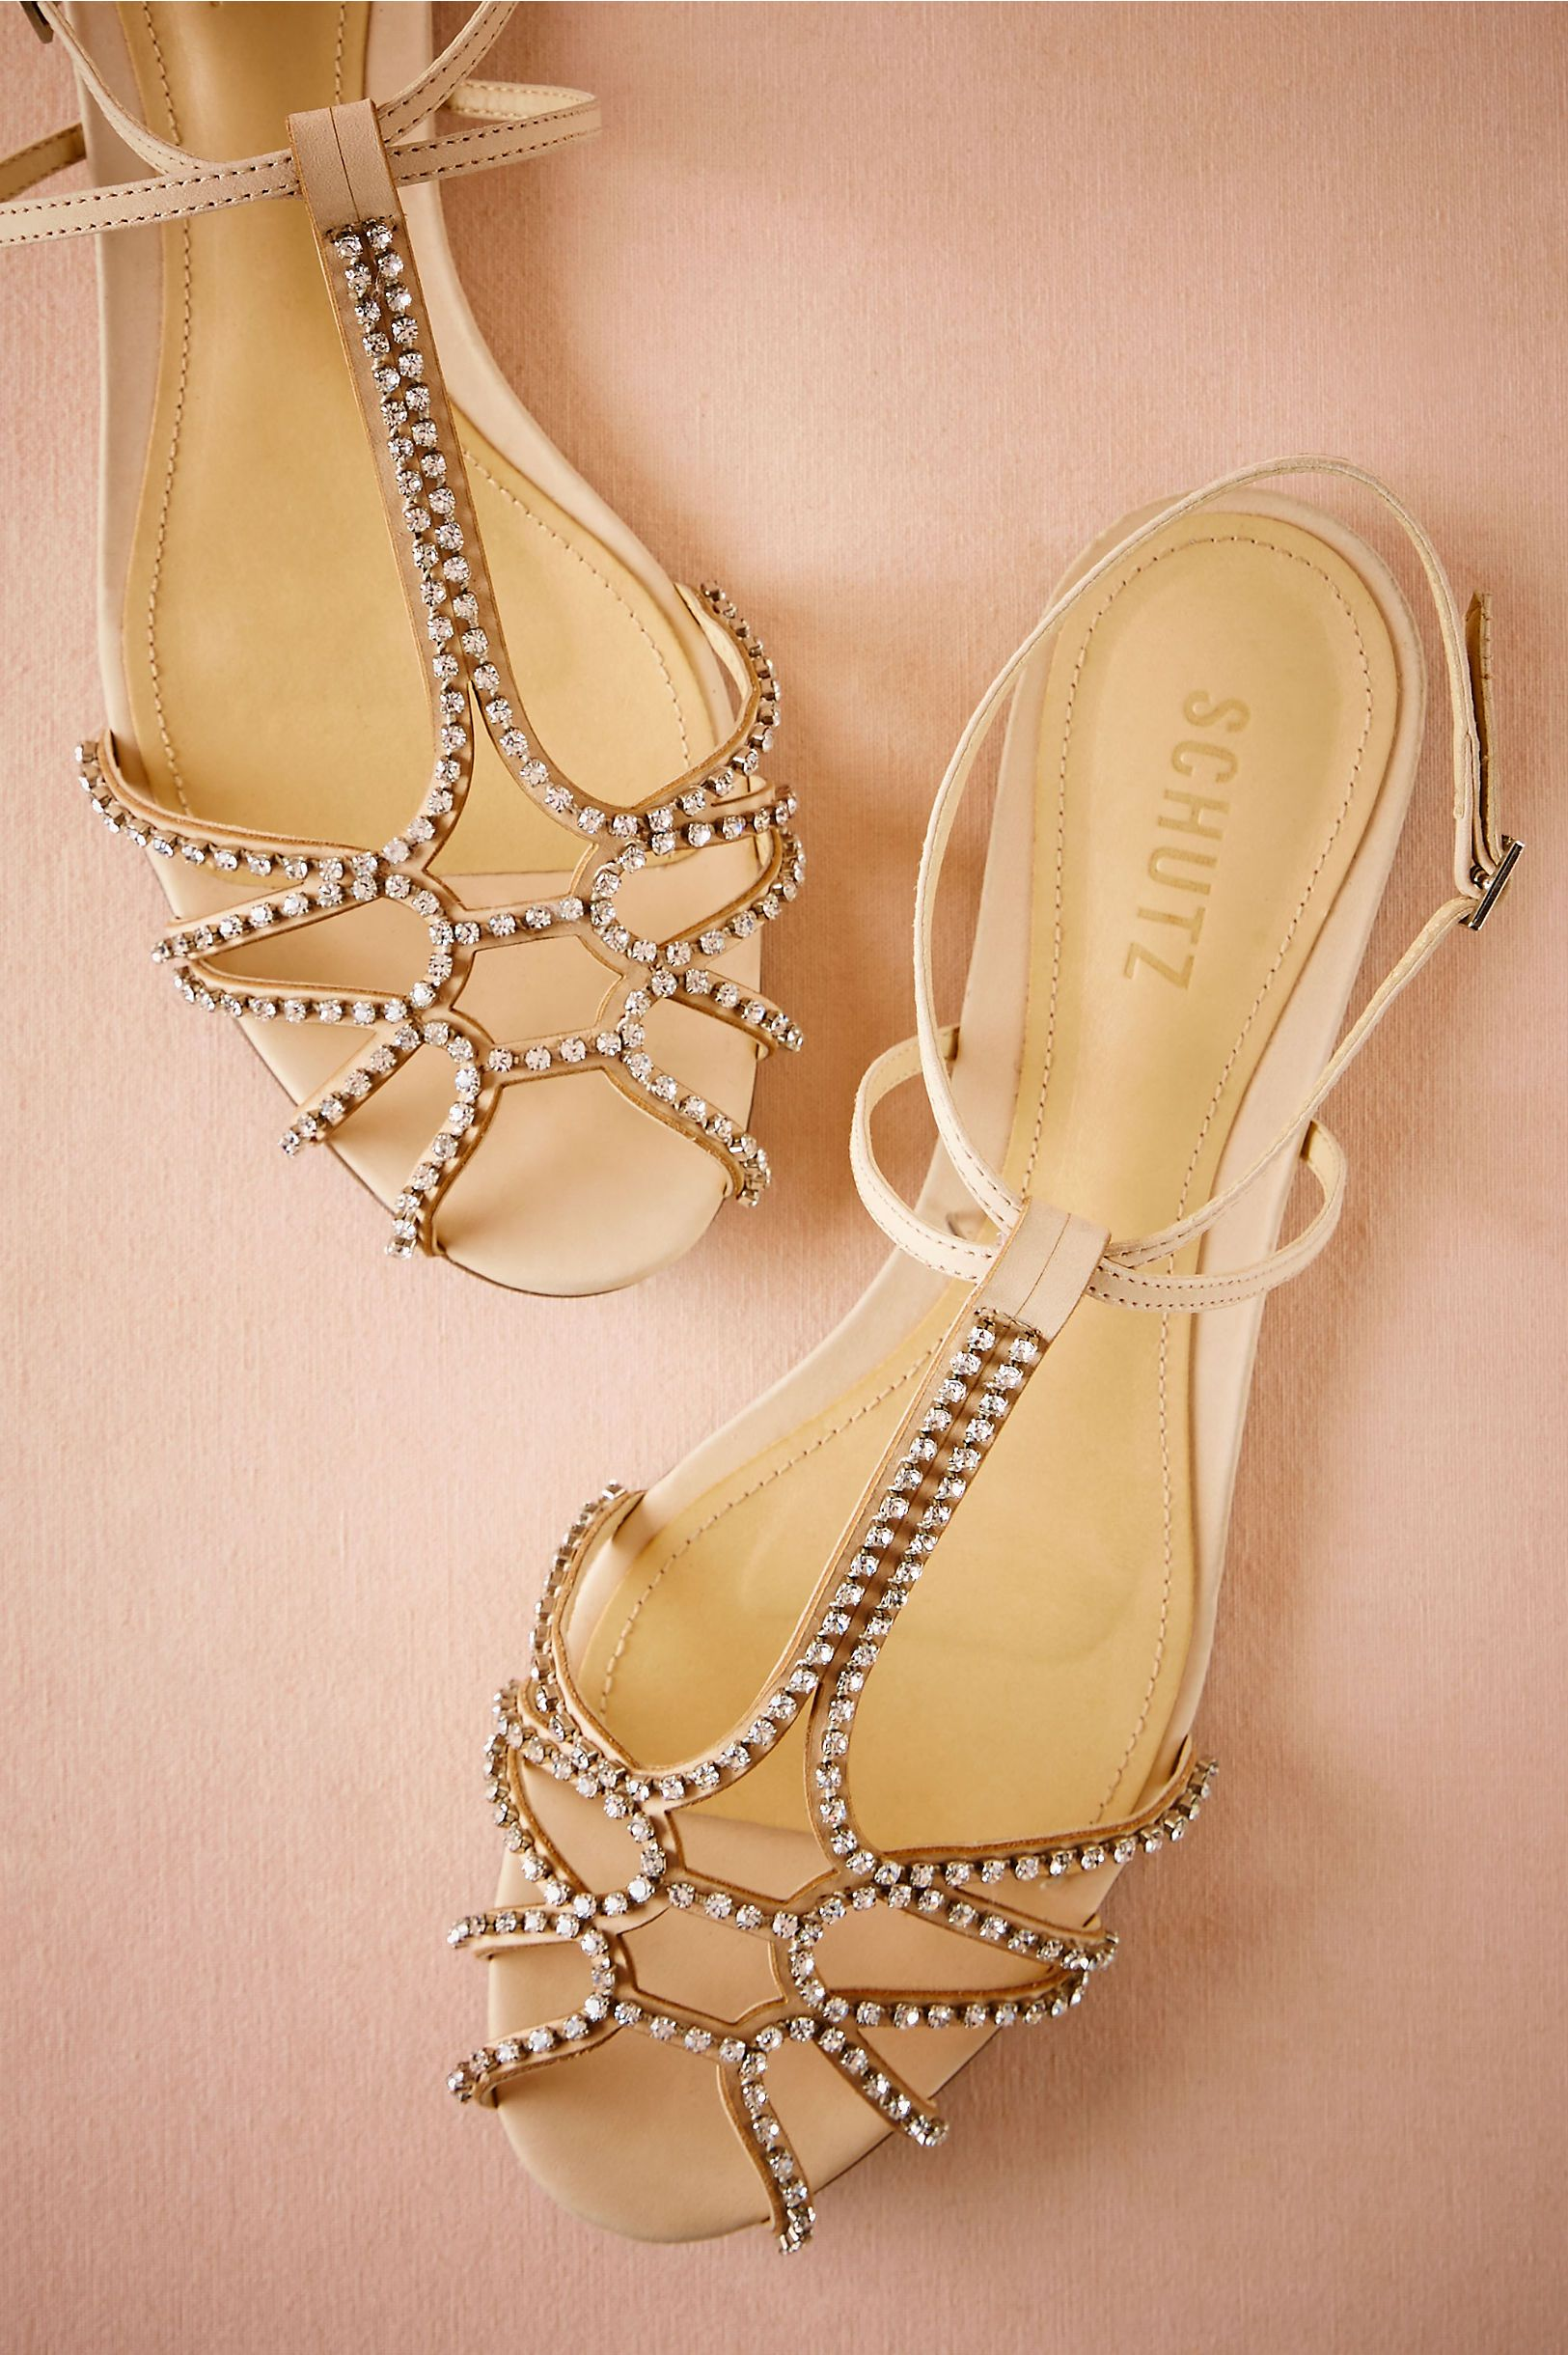 78d4f2ffd Wedding · BHLDN Dorothea Sandals in Shoes   Accessories Shoes at BHLDN